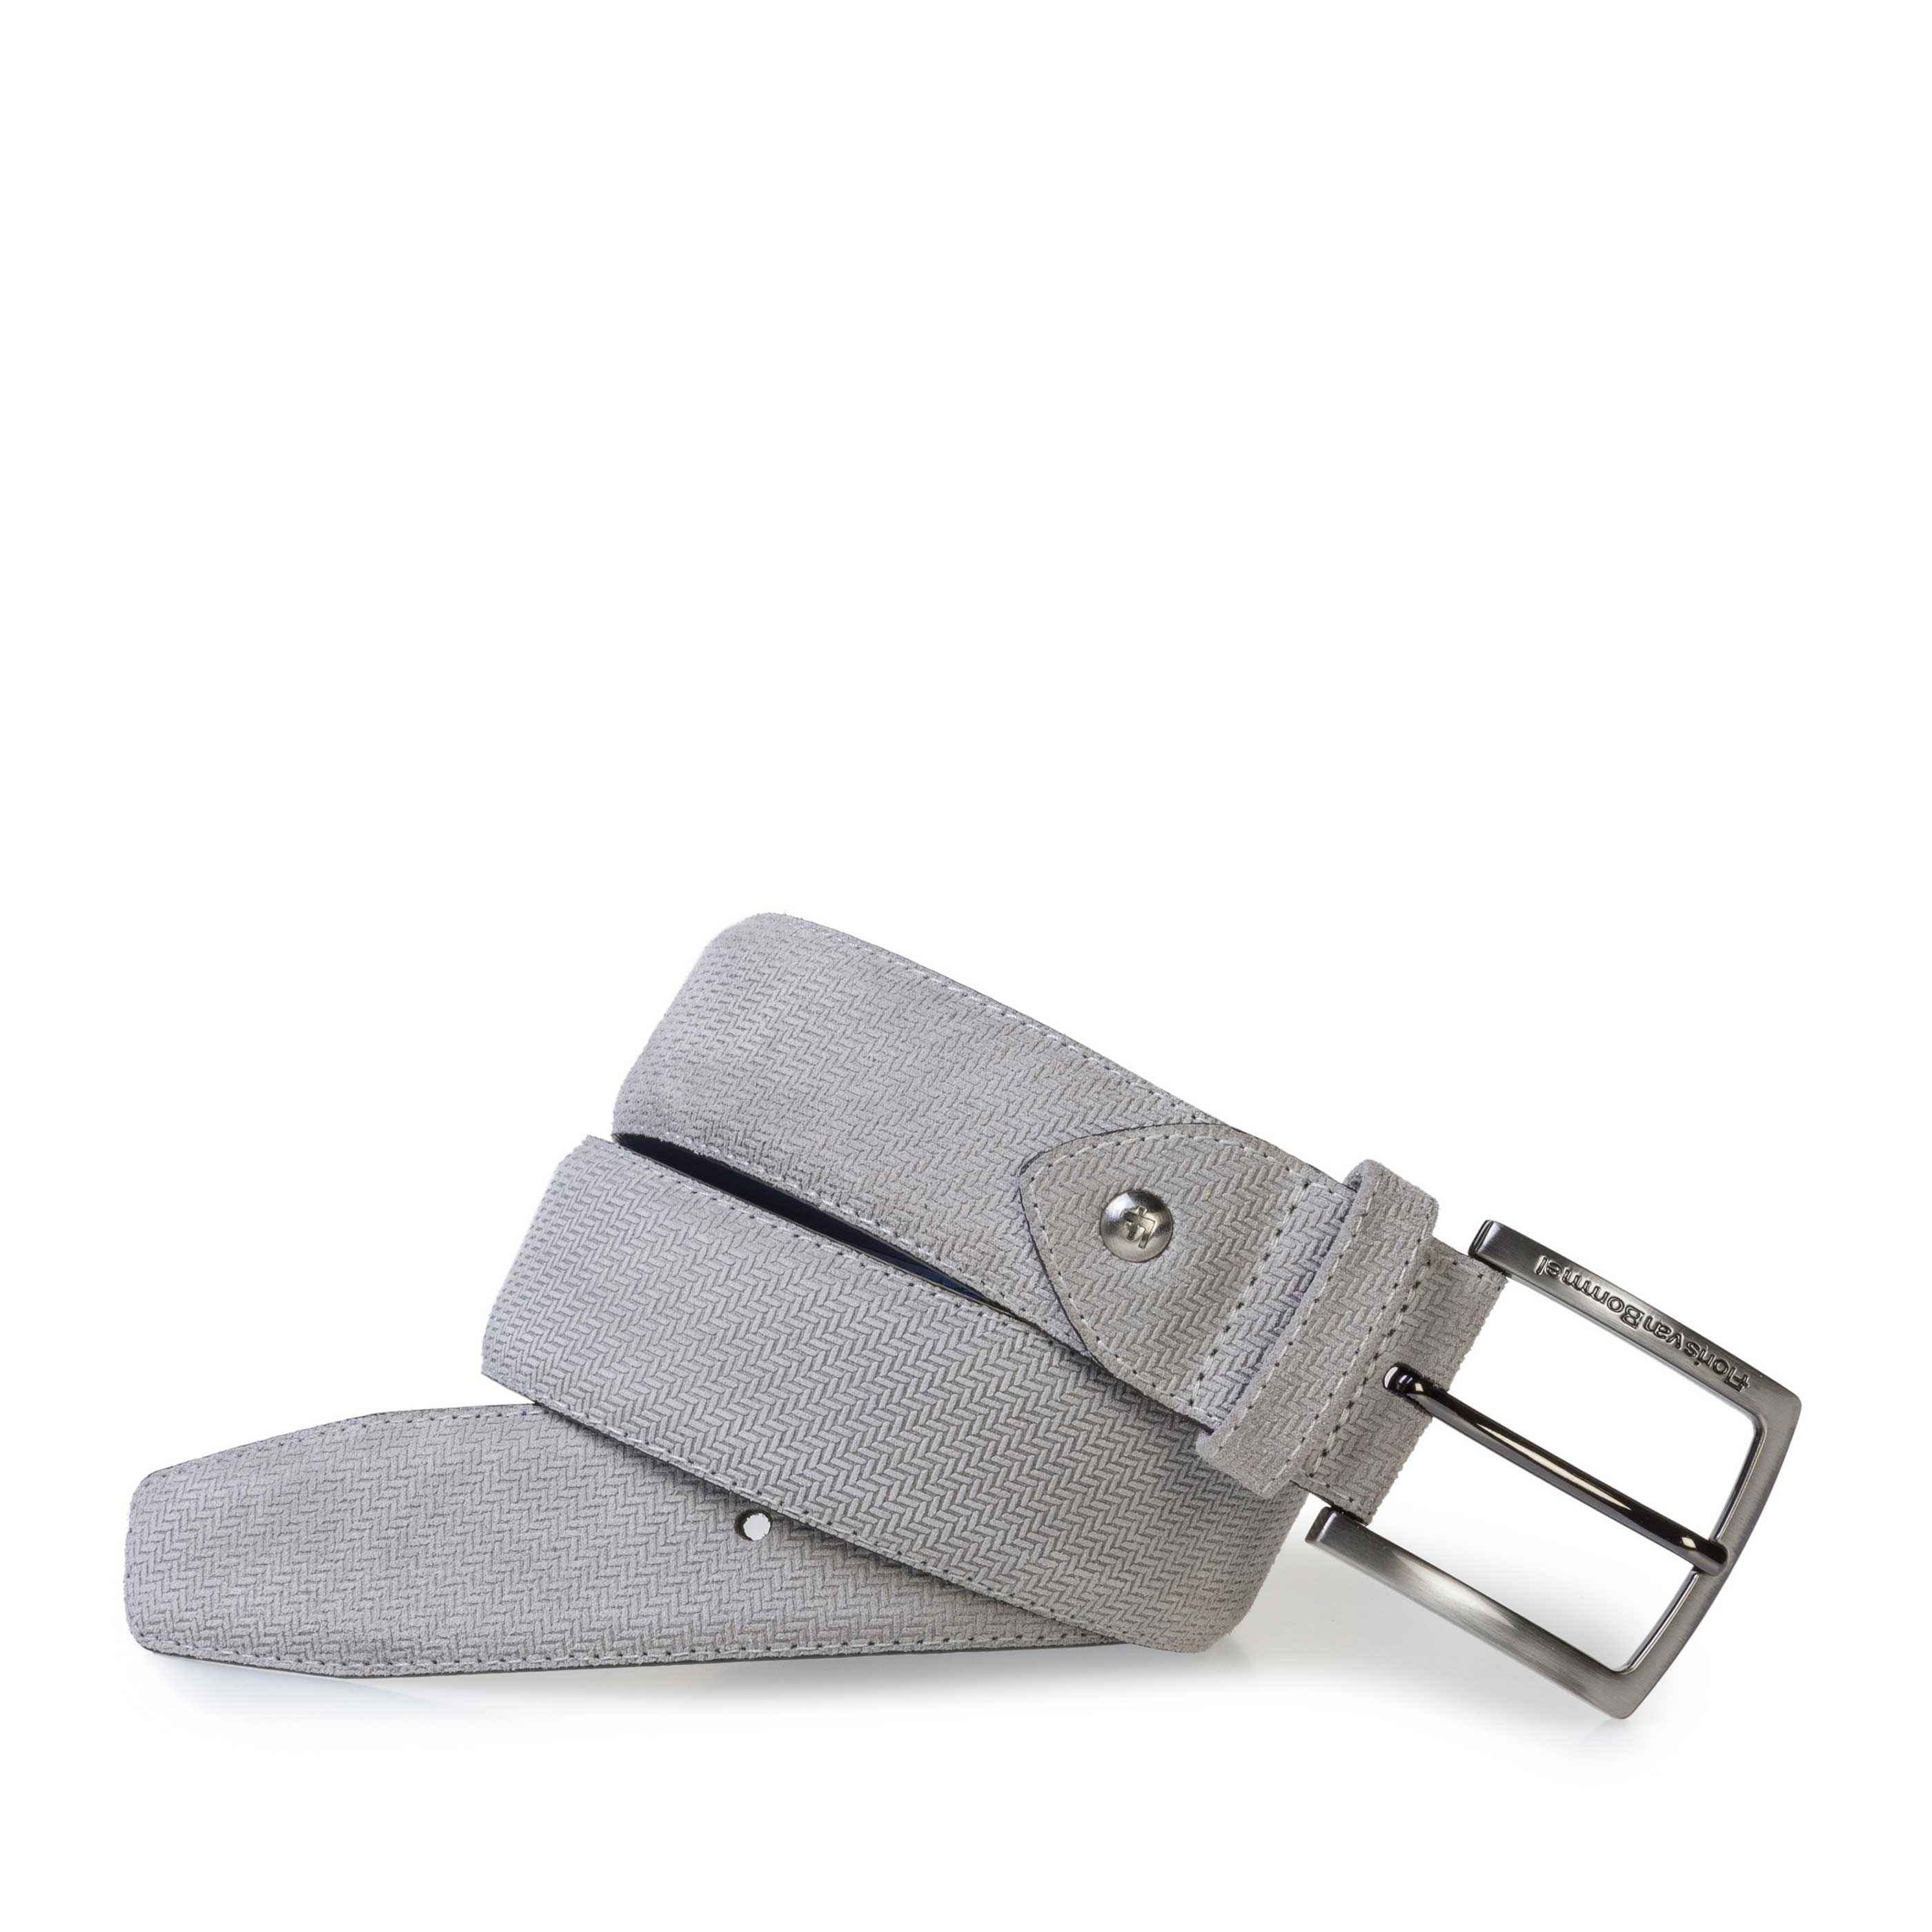 75202/50 - Light grey suede leather belt with print